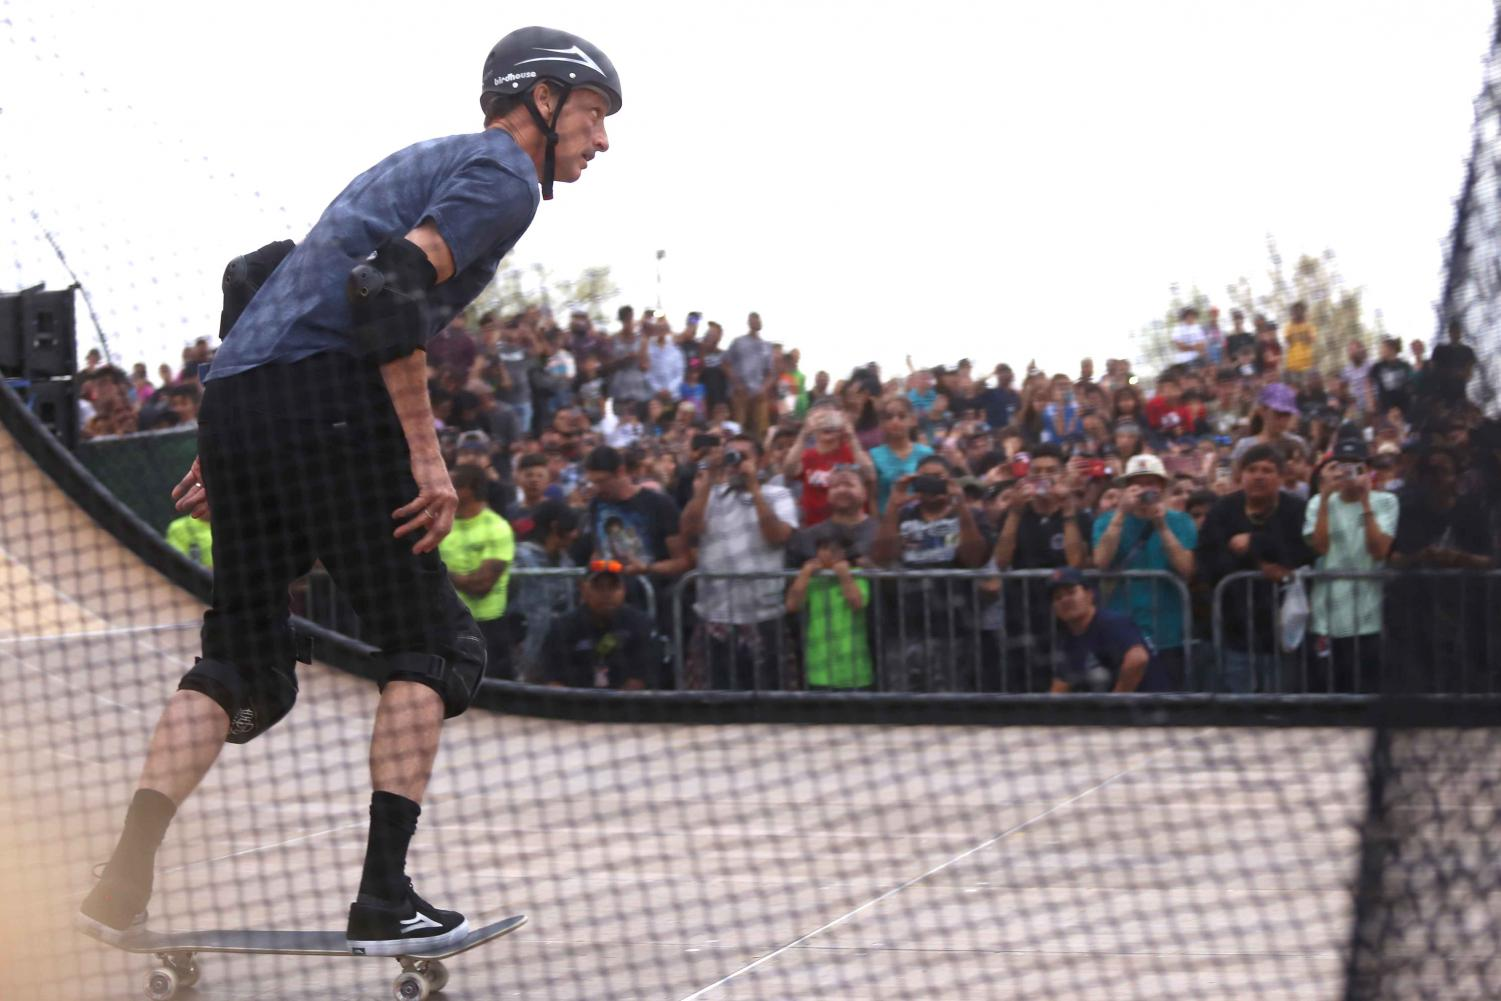 Tony+Hawk+skates+in+front+of+a+big+crowd+at+the+Pakitu+Skate+Plaza+on+Saturday%2C+March+24+in+Socorro%2C+TX.+